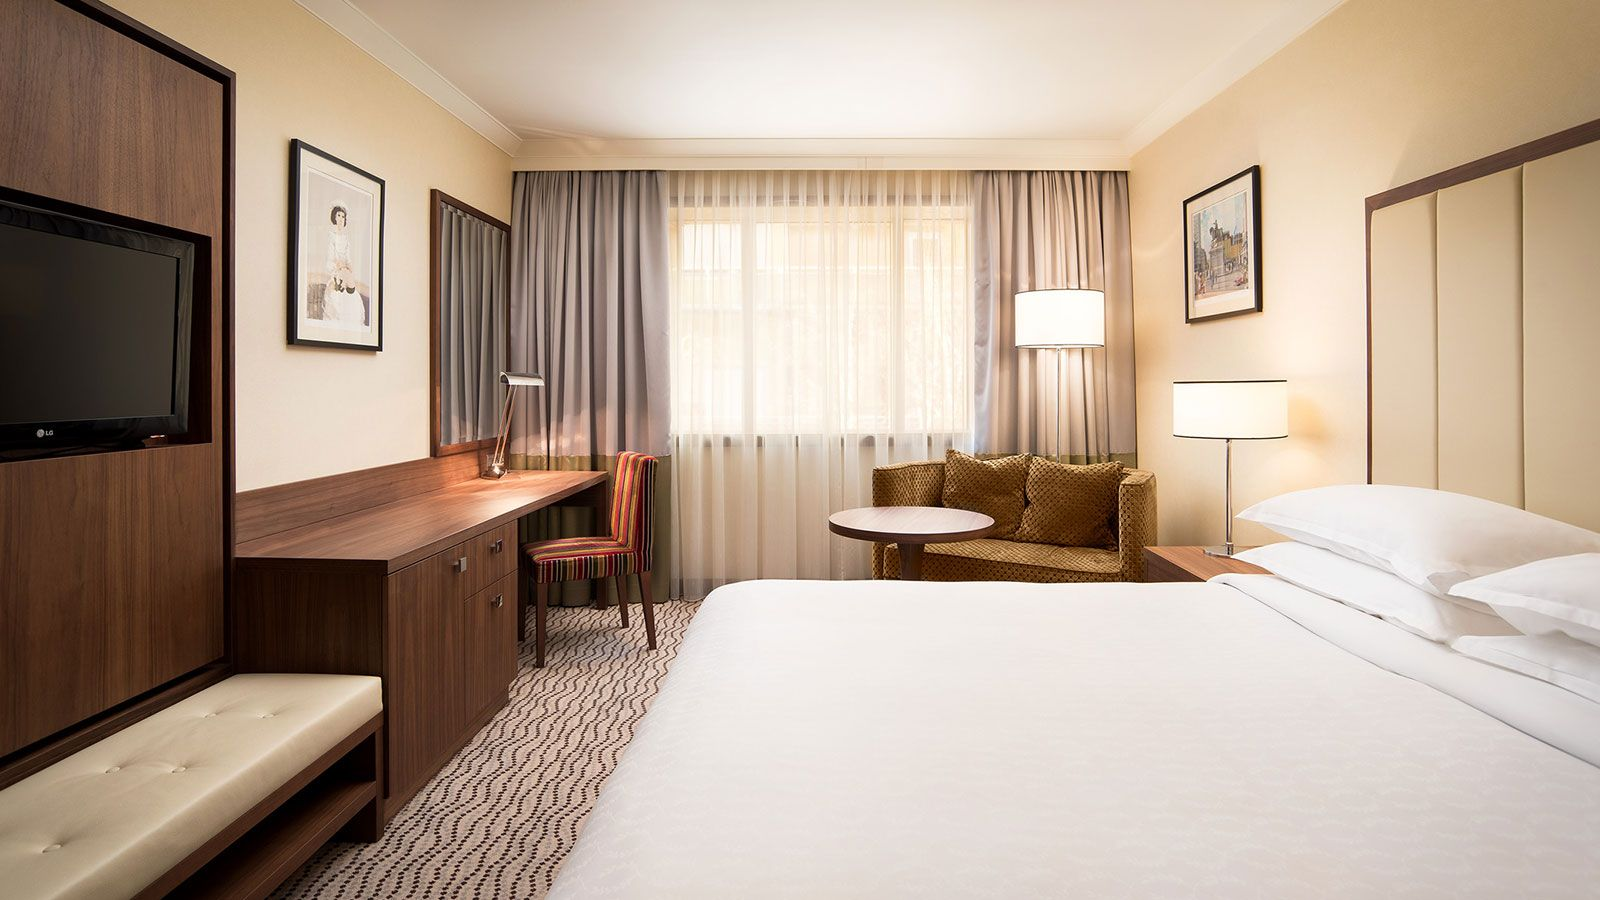 Discover our Executive Room in 360